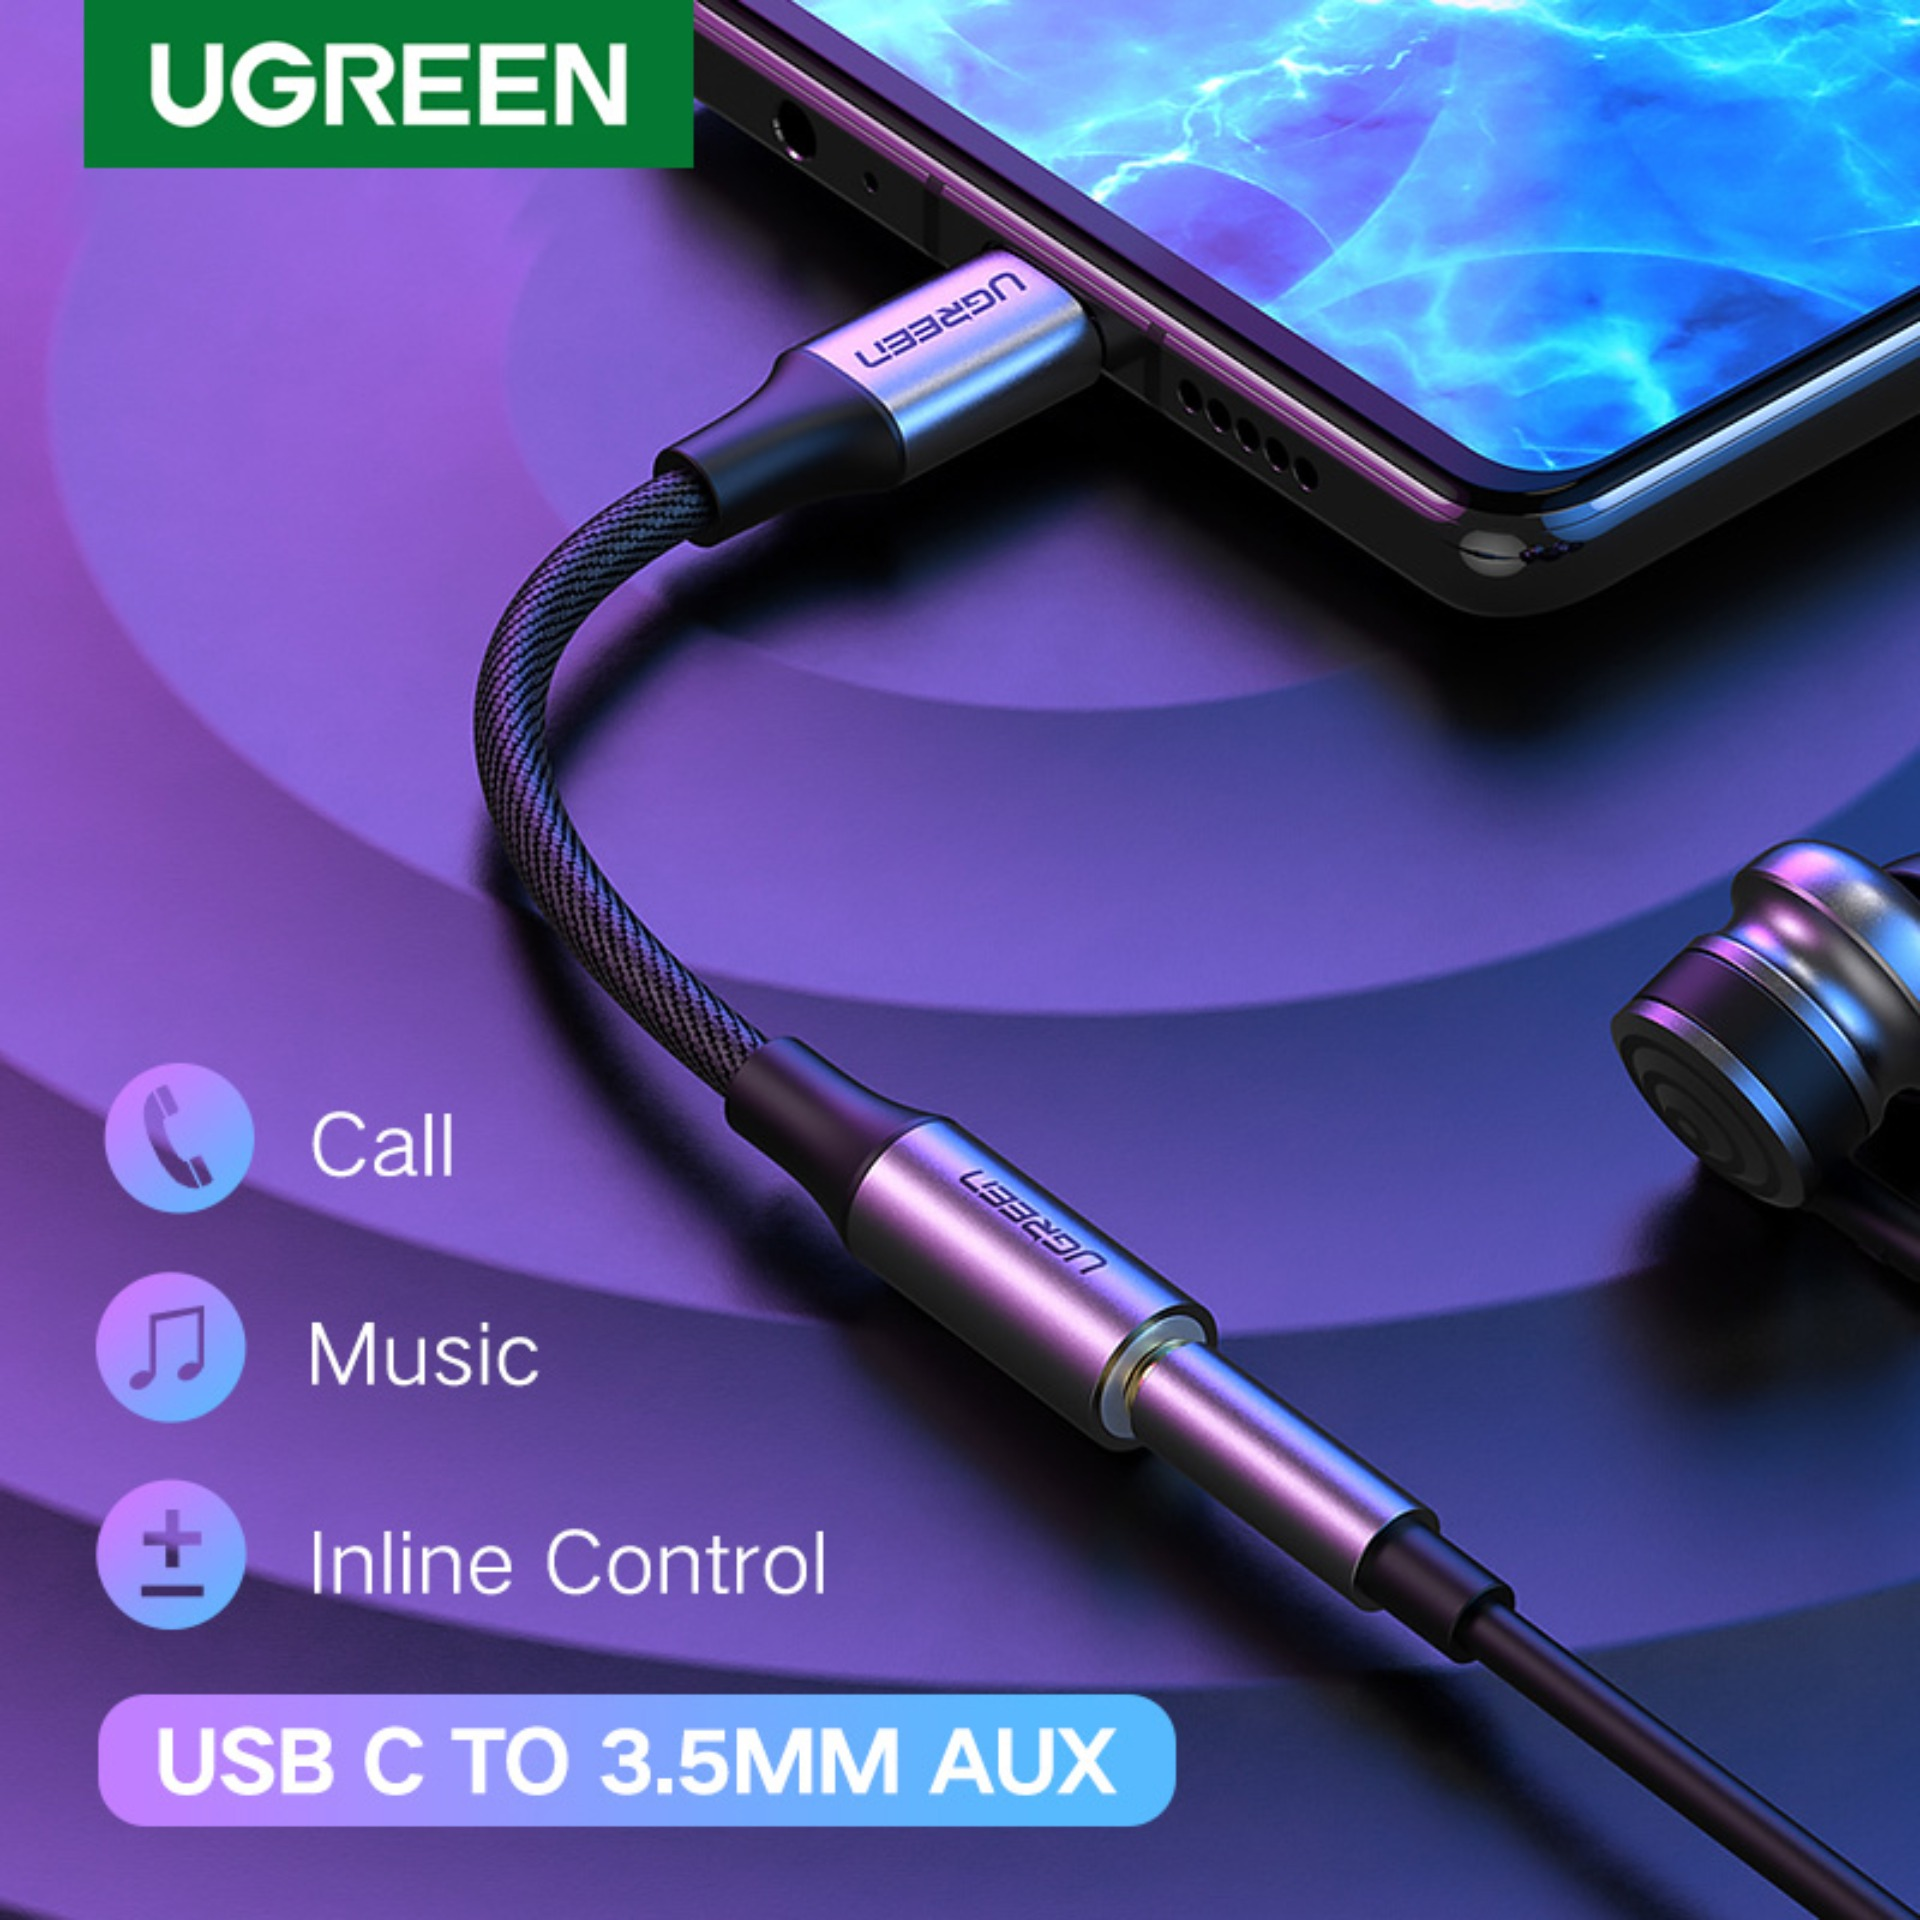 USB-C to 3.5 mm Headphone Jack Adapter,Type C to 3.5mm Braided Audio Aux Cable Adapter Cable Compatible with Huawei P30 Pro 1 Pack P20 Pro//Mate 20 Pro//iPad Pro//Google Pixel//Samsung//OnePlus//Xiaomi-